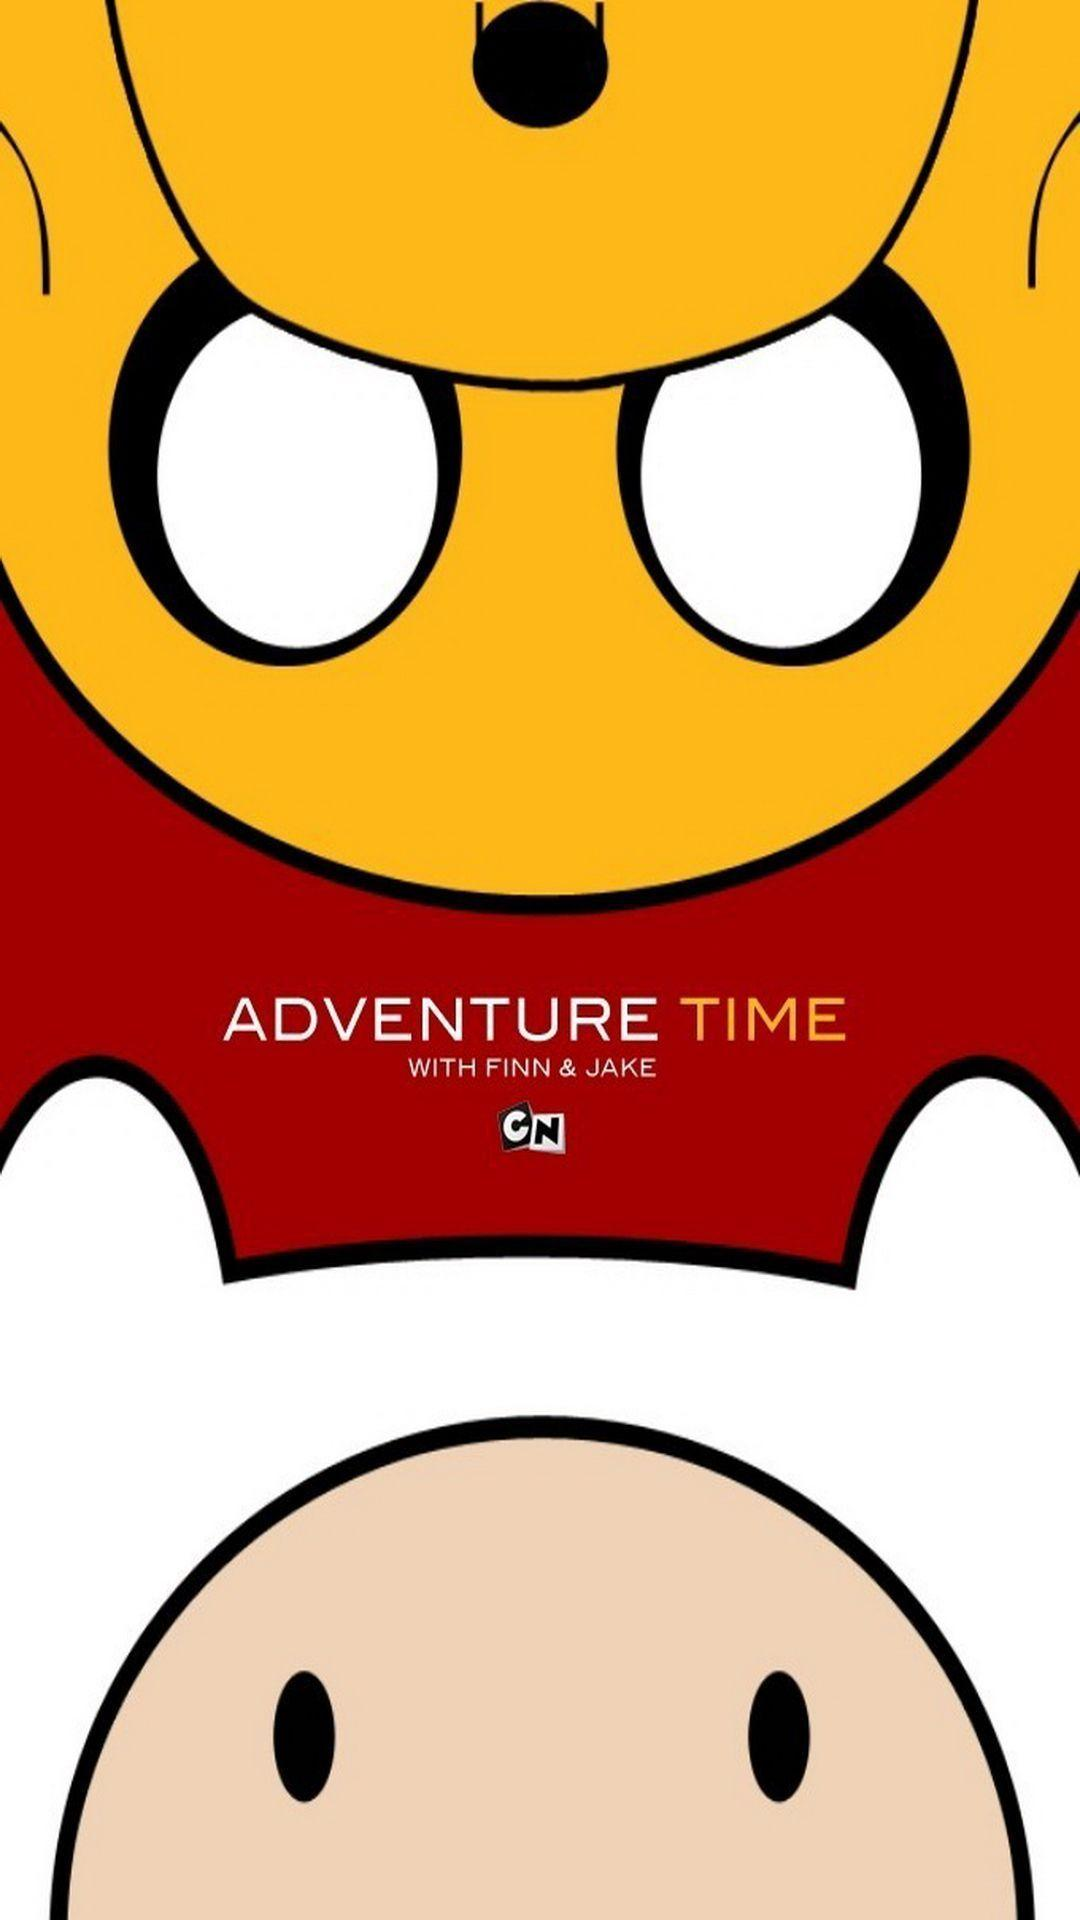 Wallpaper iphone adventure time - Adventure Time Iphone 6 Wallpaper Hd Wallpapers And Iphone 6